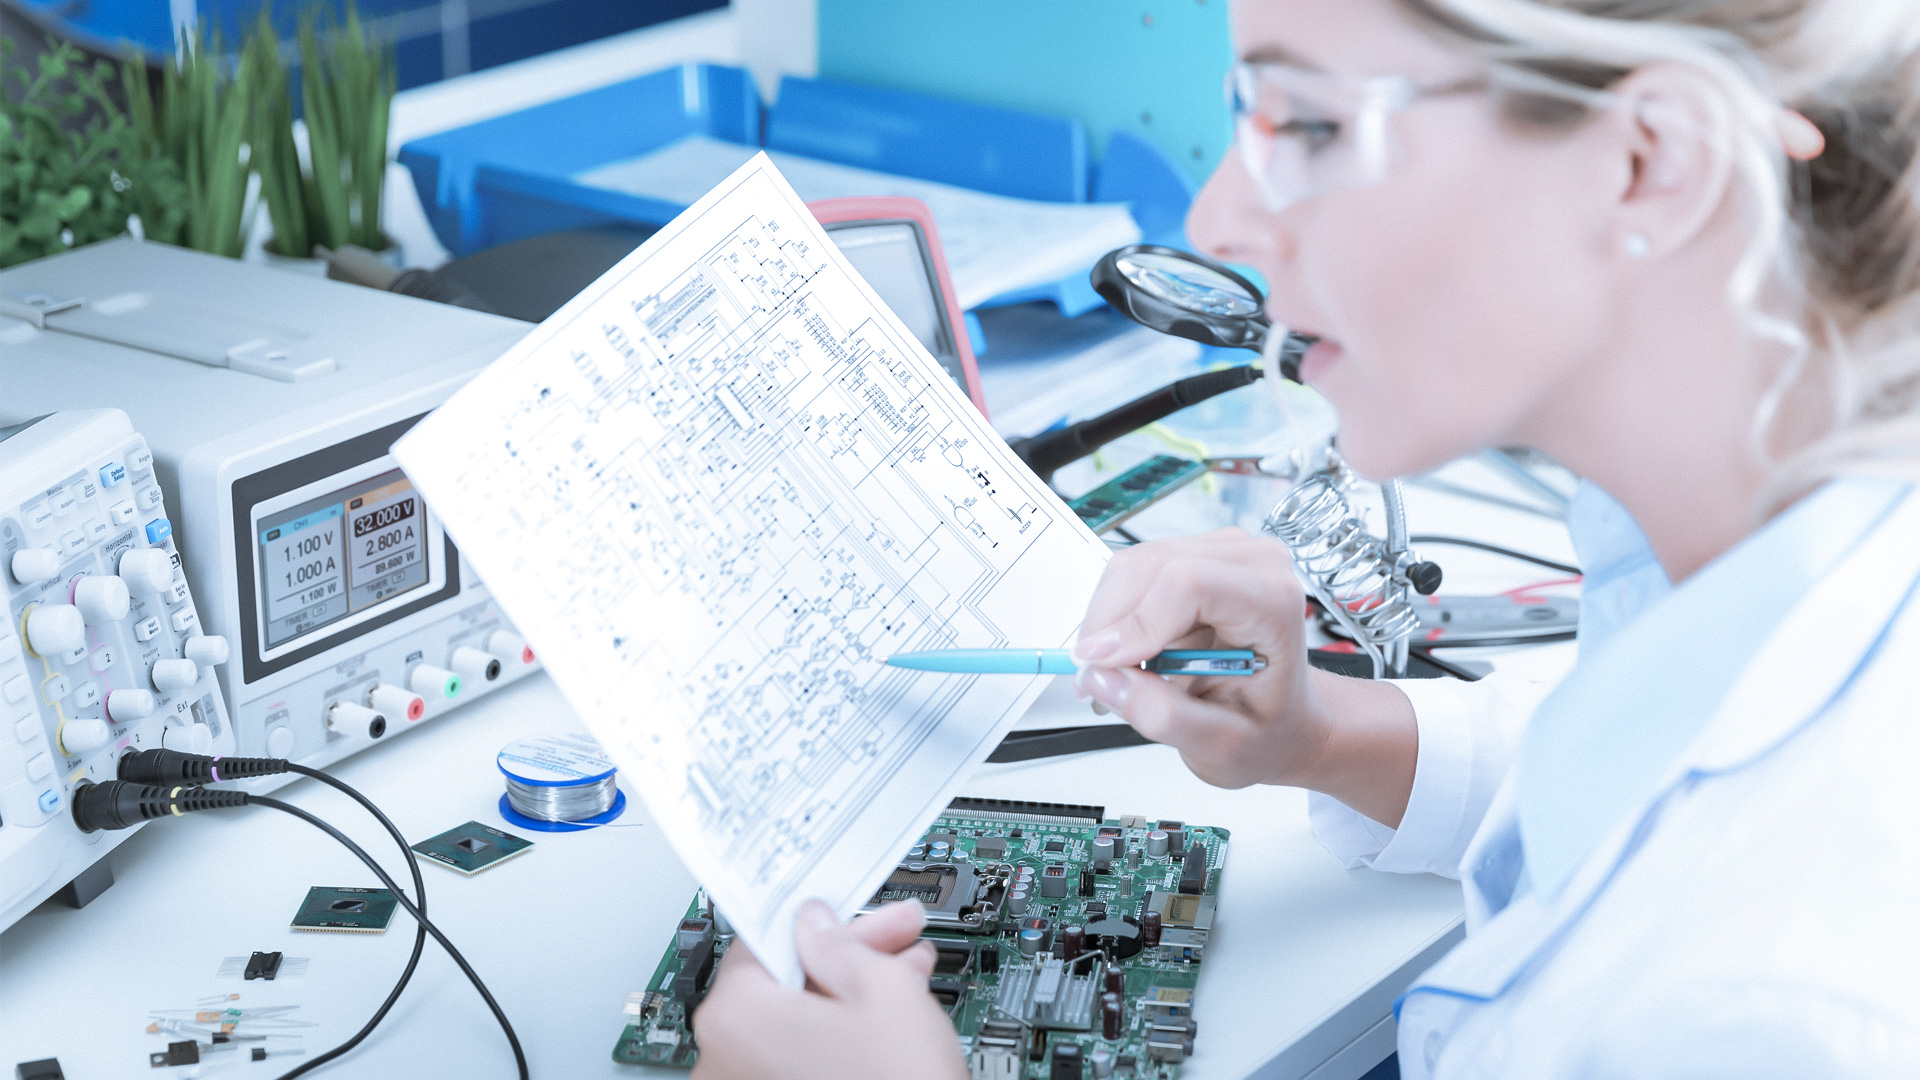 Evatronix - Documentation needed in the PCB manufacturing